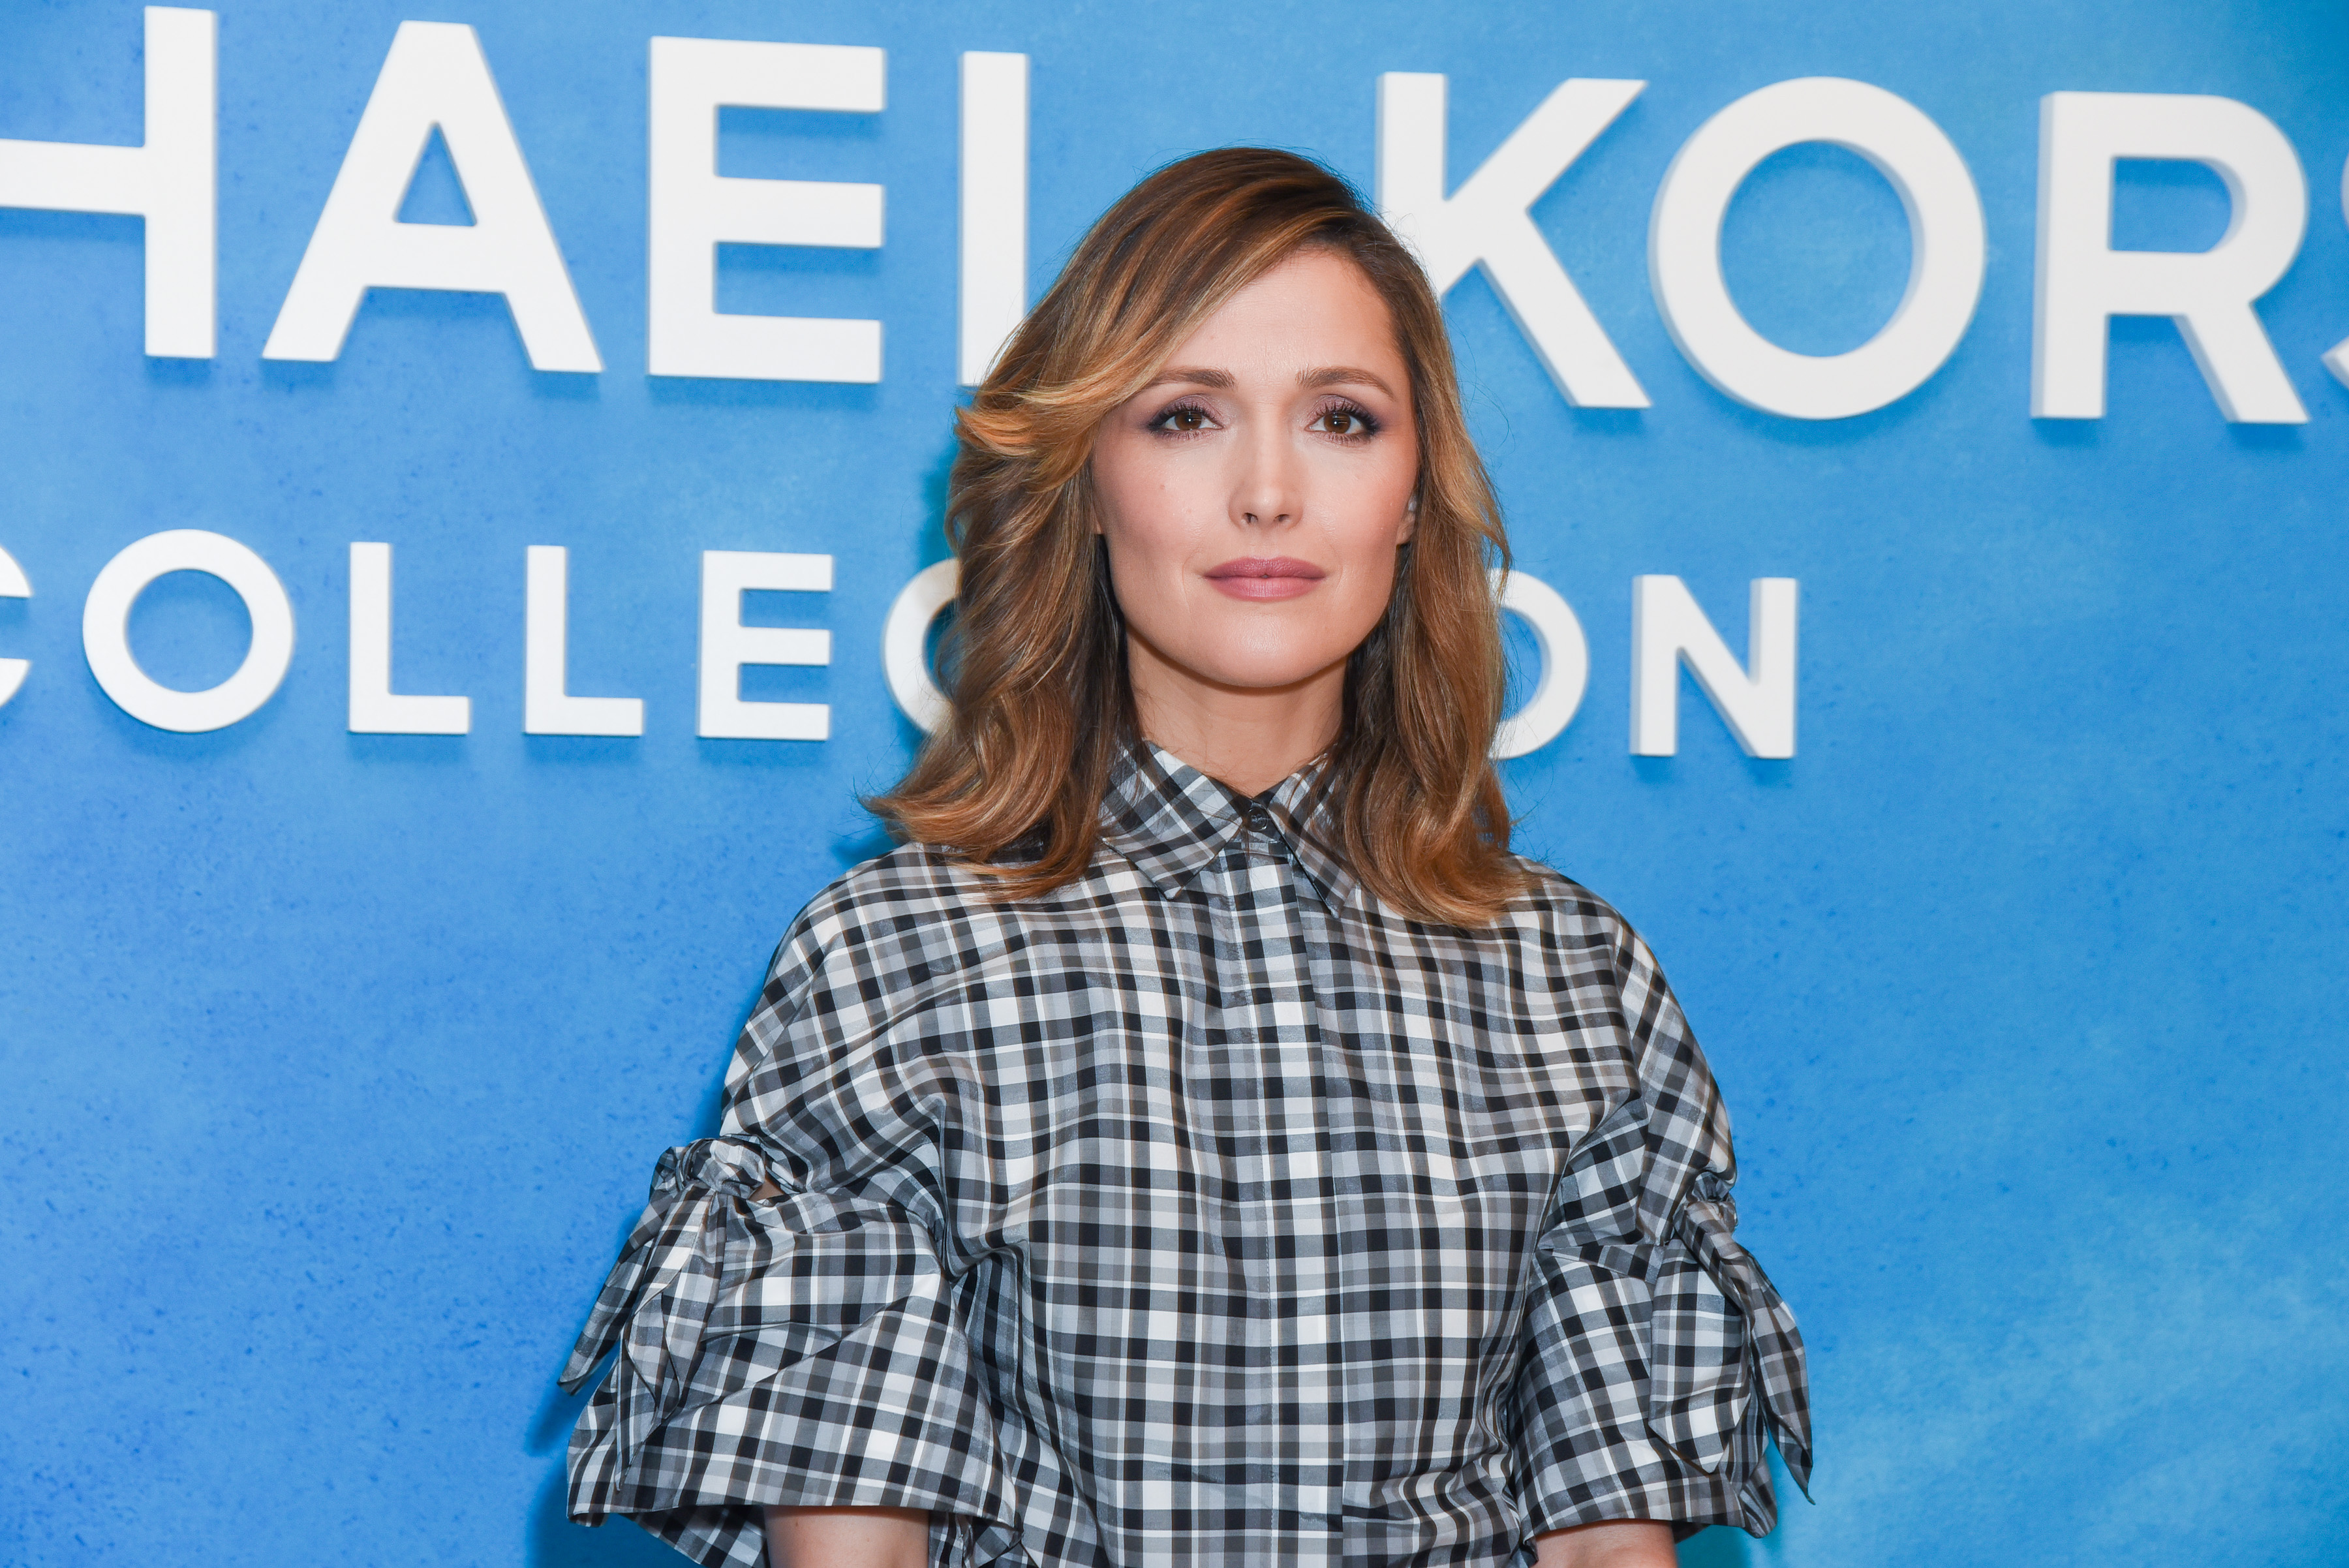 Rose Byrne attends Michael Kors Collection Spring 2019 Runway Show at Pier 17 on September 12, 2018 in New York City.